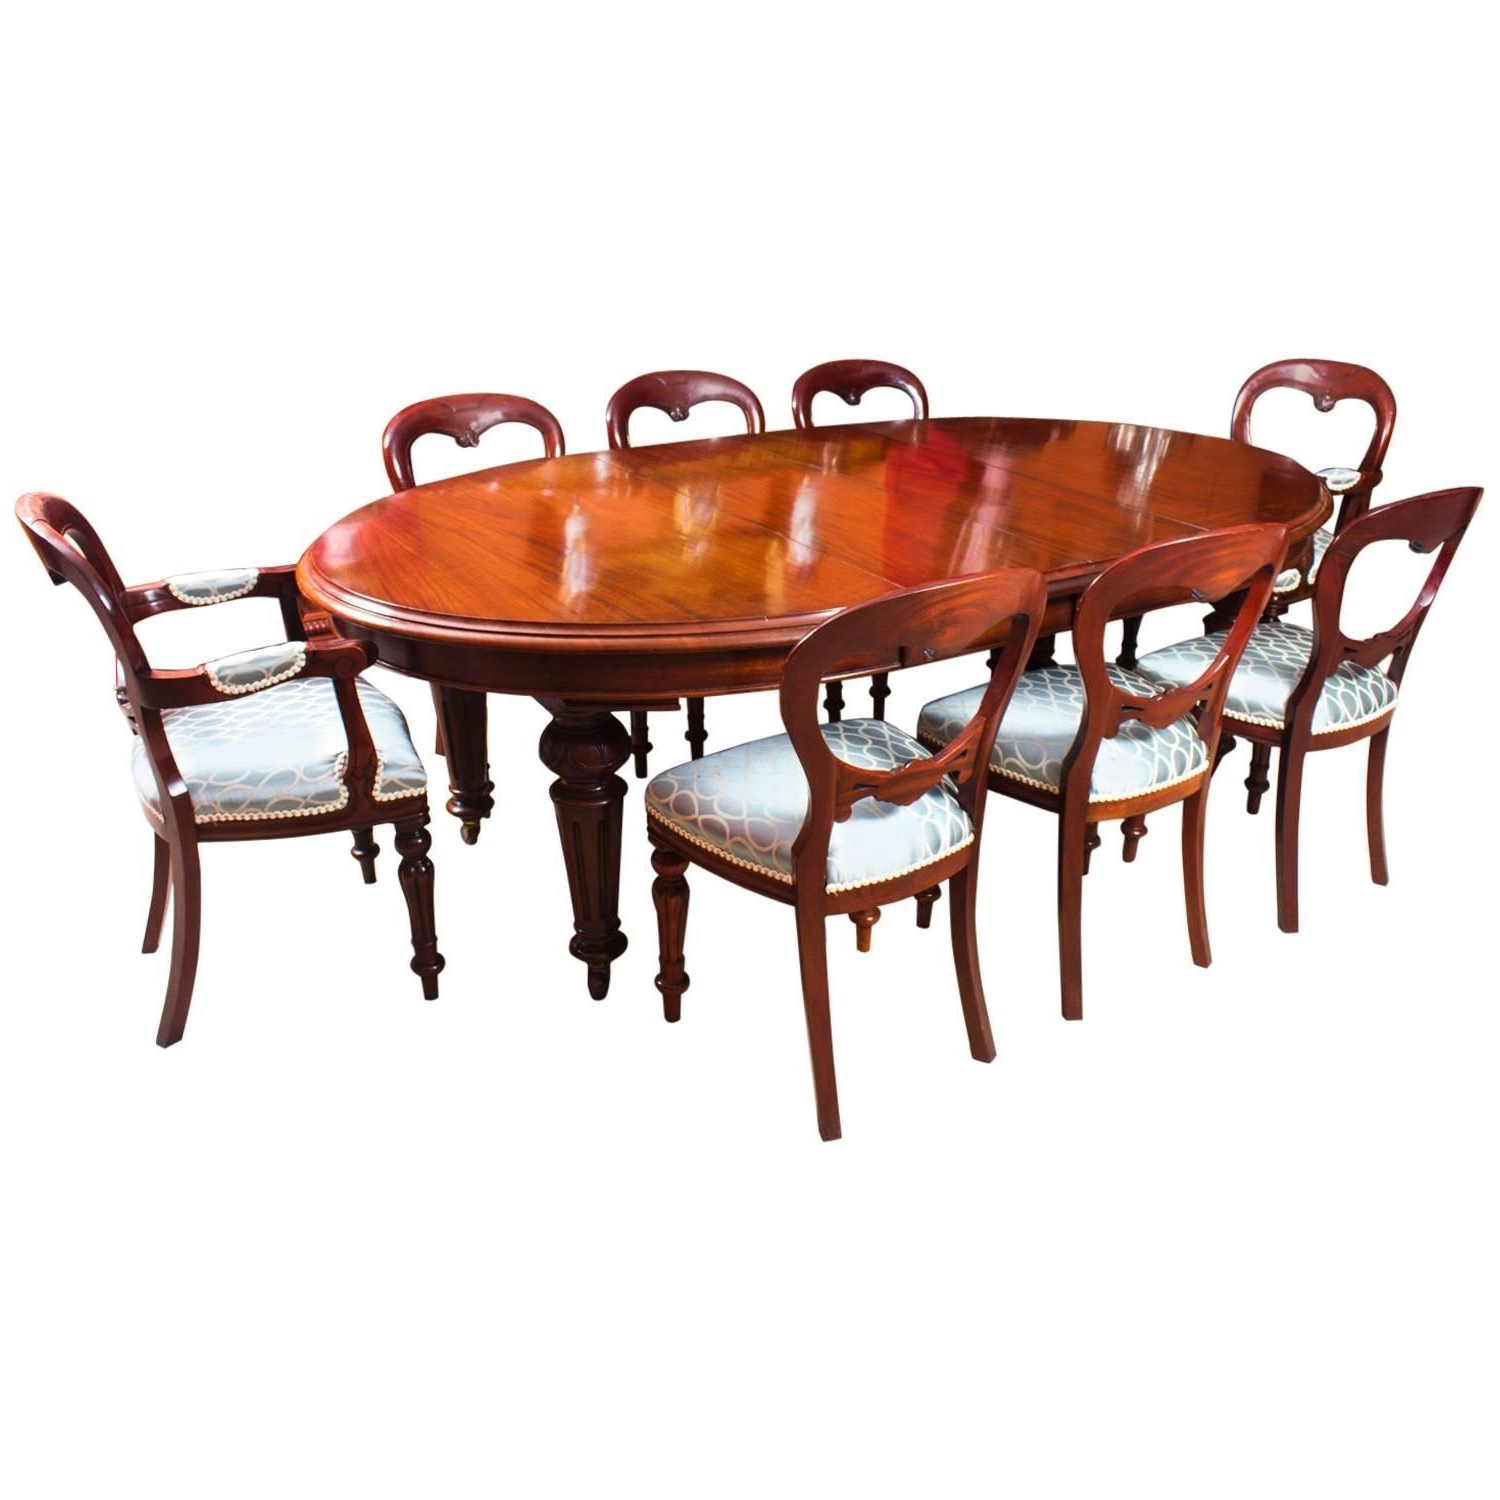 Newest Antique Victorian Oval Dining Table 8 Chairs Antique Wooden Dining Within Oval Dining Tables For Sale (View 14 of 25)